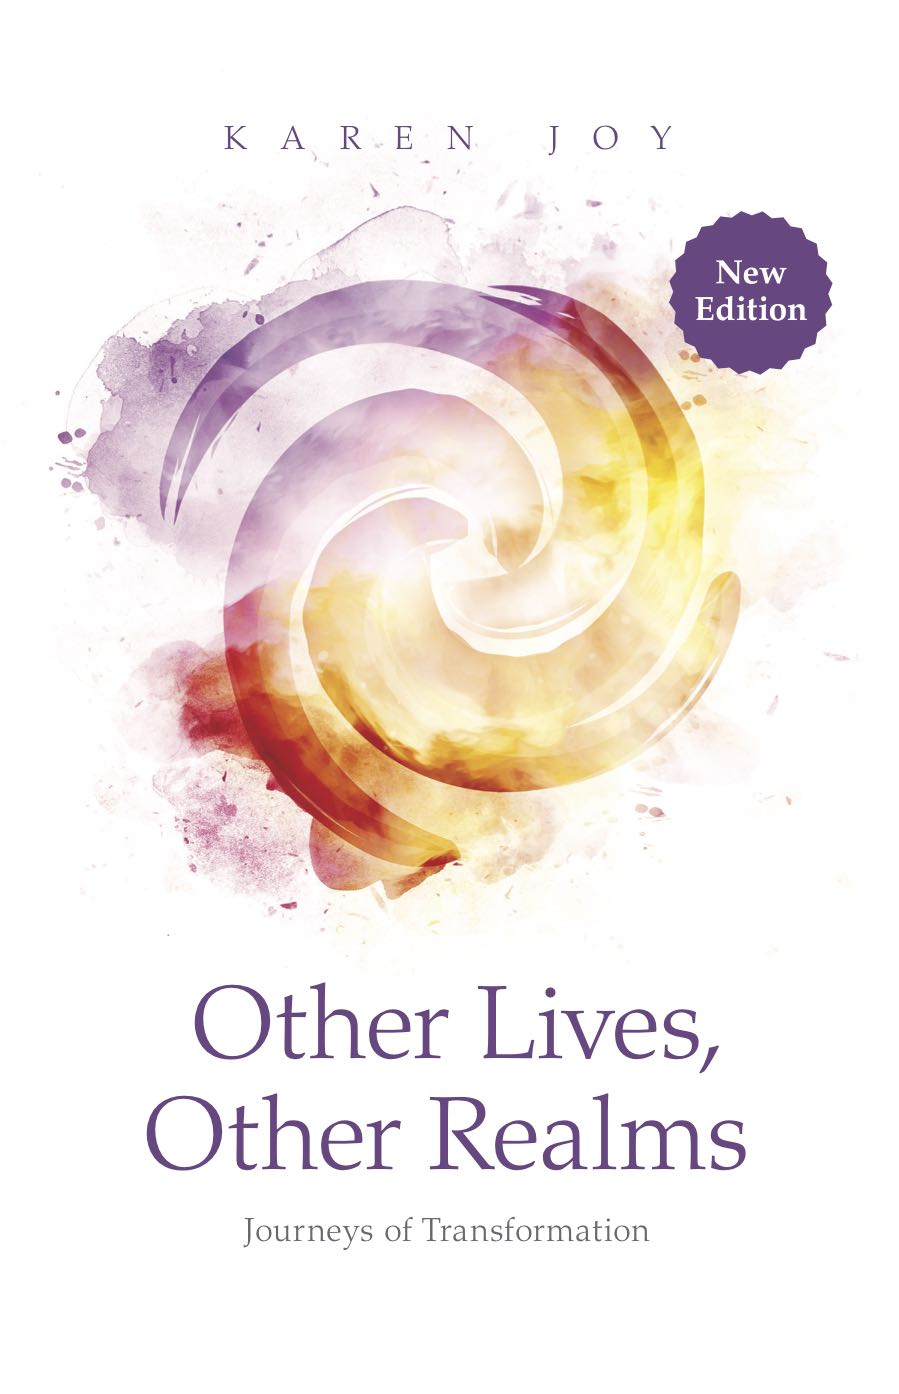 Other Lives, Other Realms: Journeys of Transformation